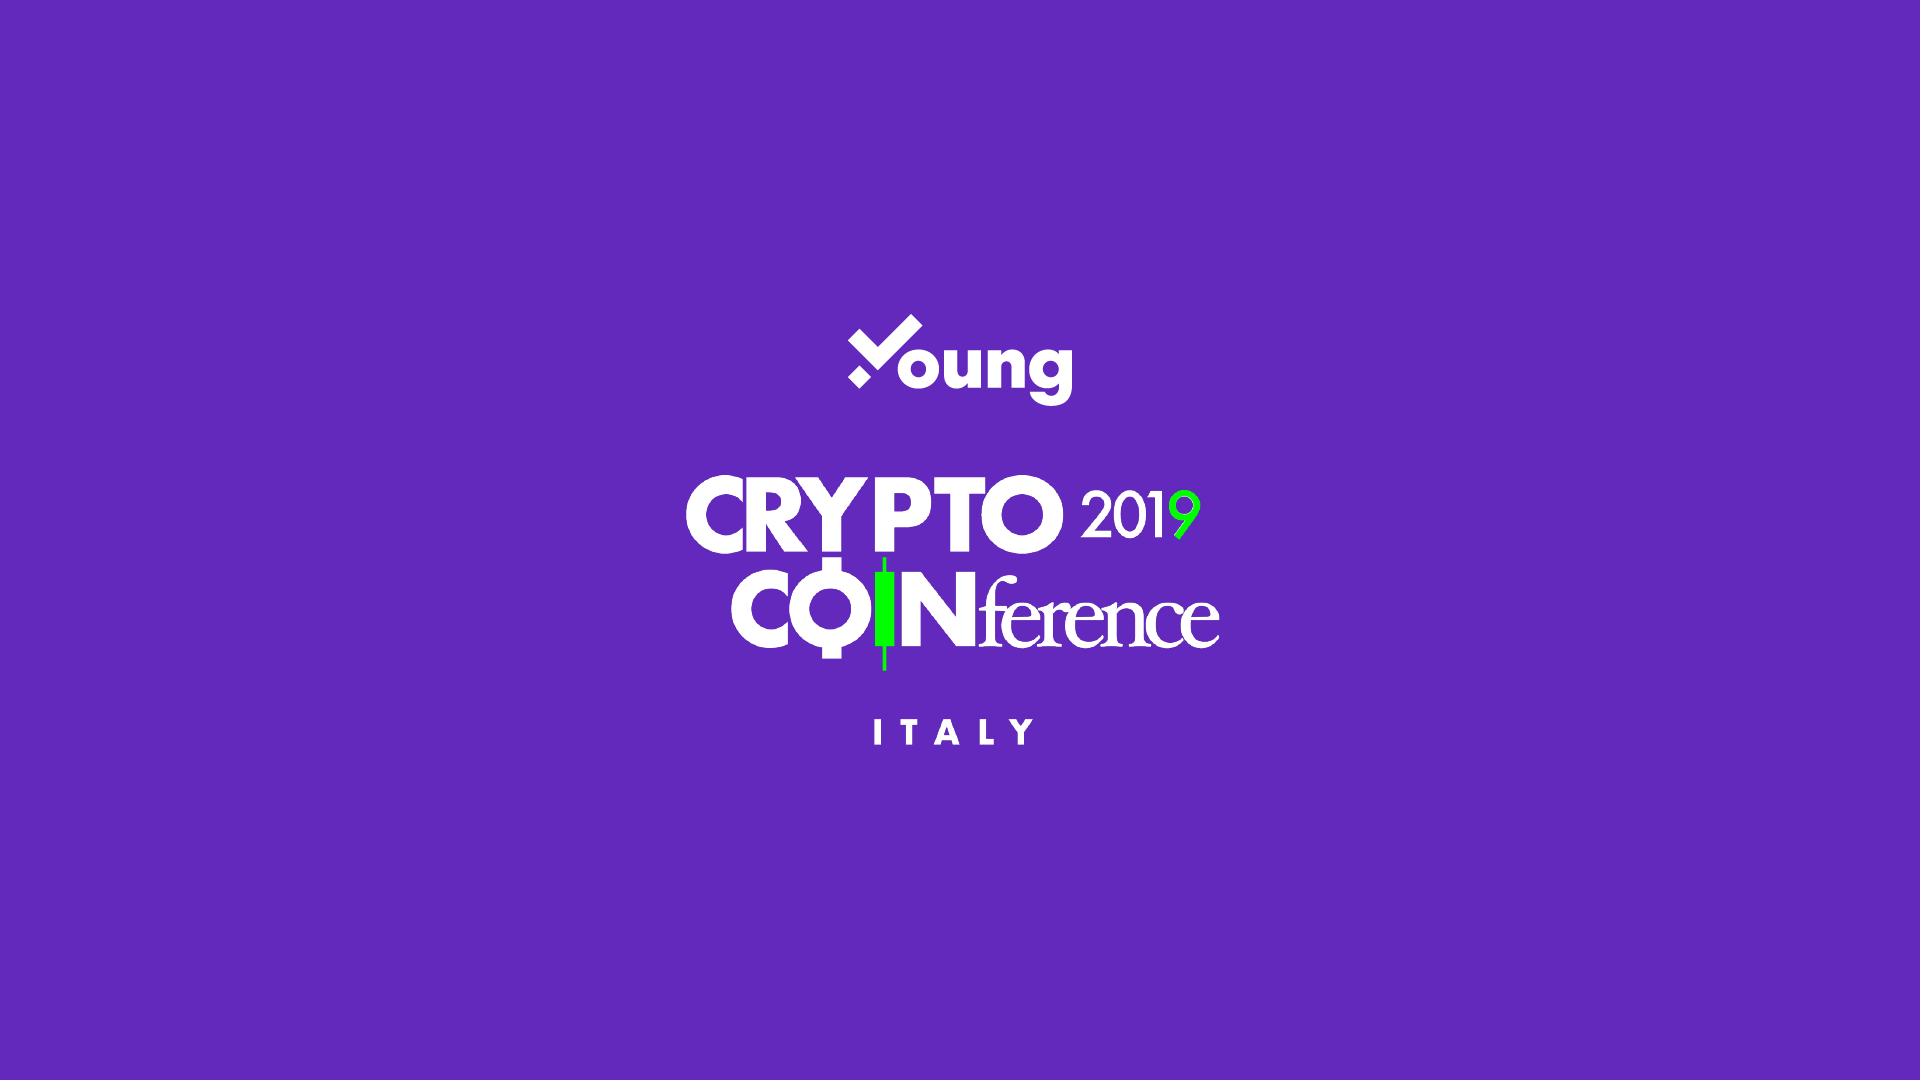 Young Platform officially launches its exchange at the Crypto Coinference